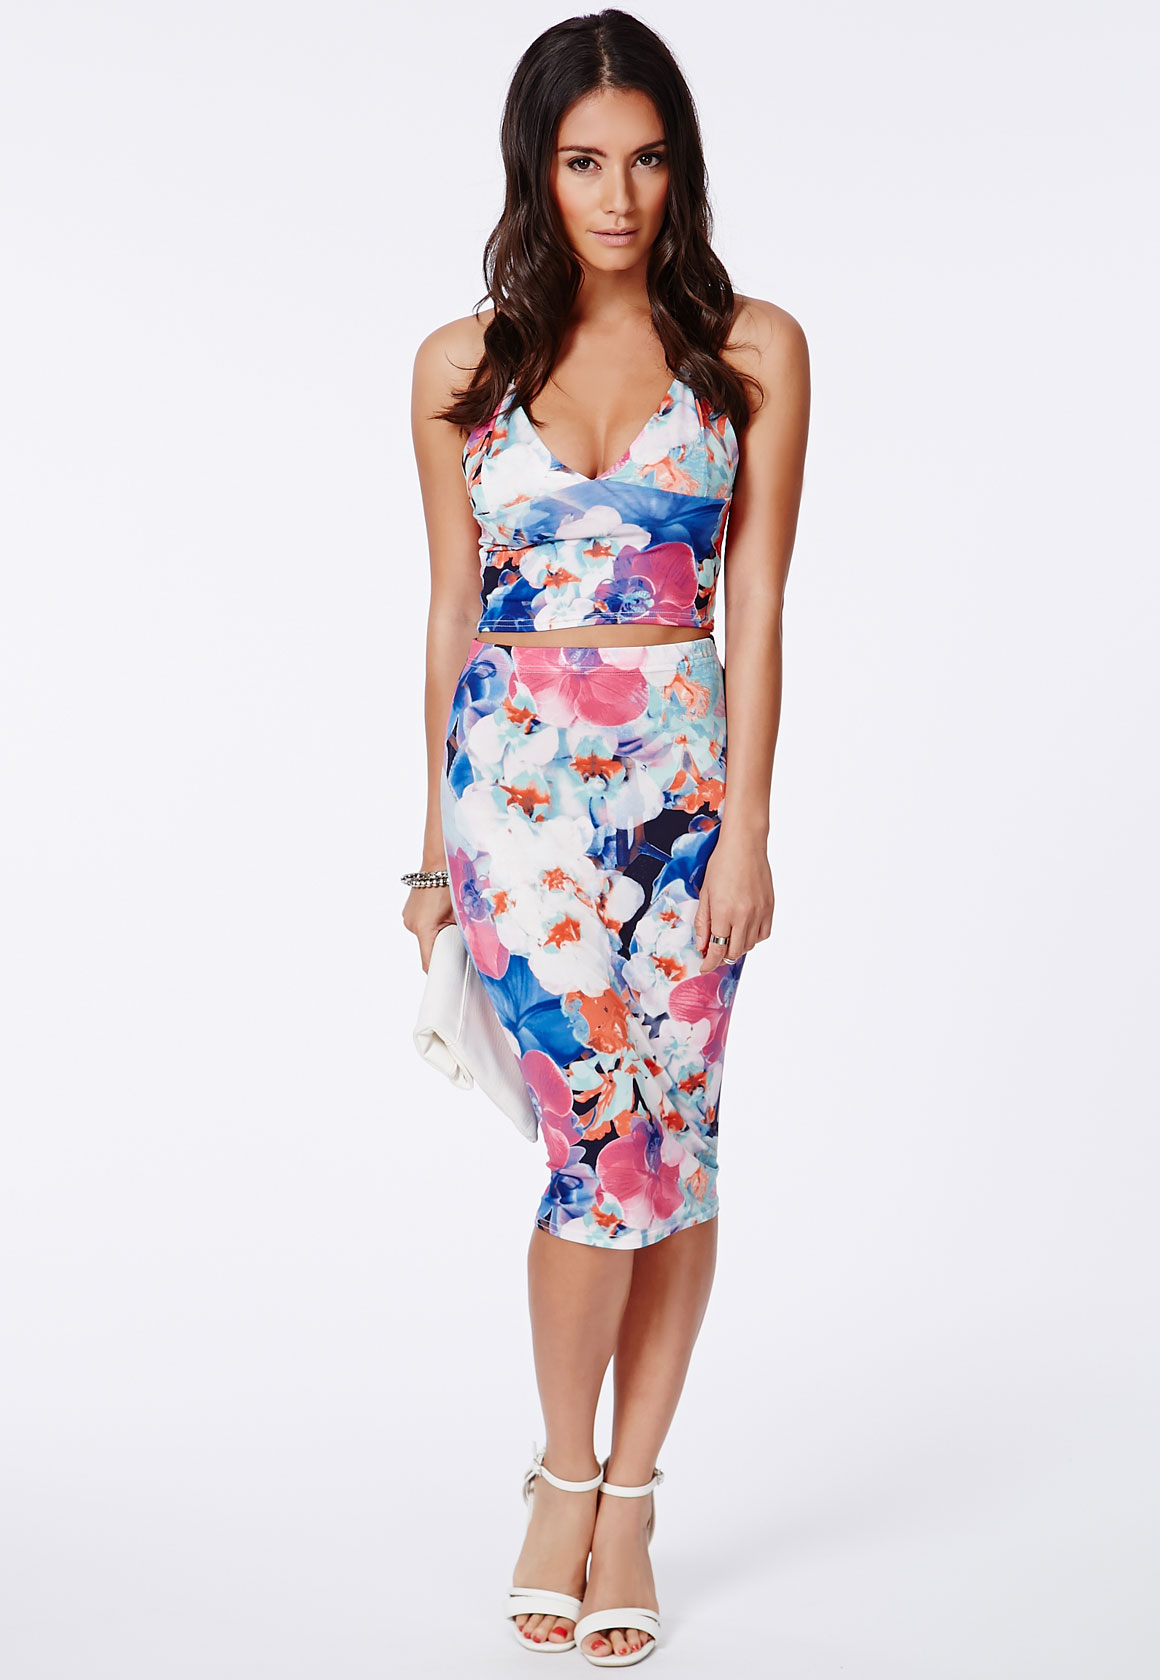 Floral Orchid Print Midi Skirt - Size 12